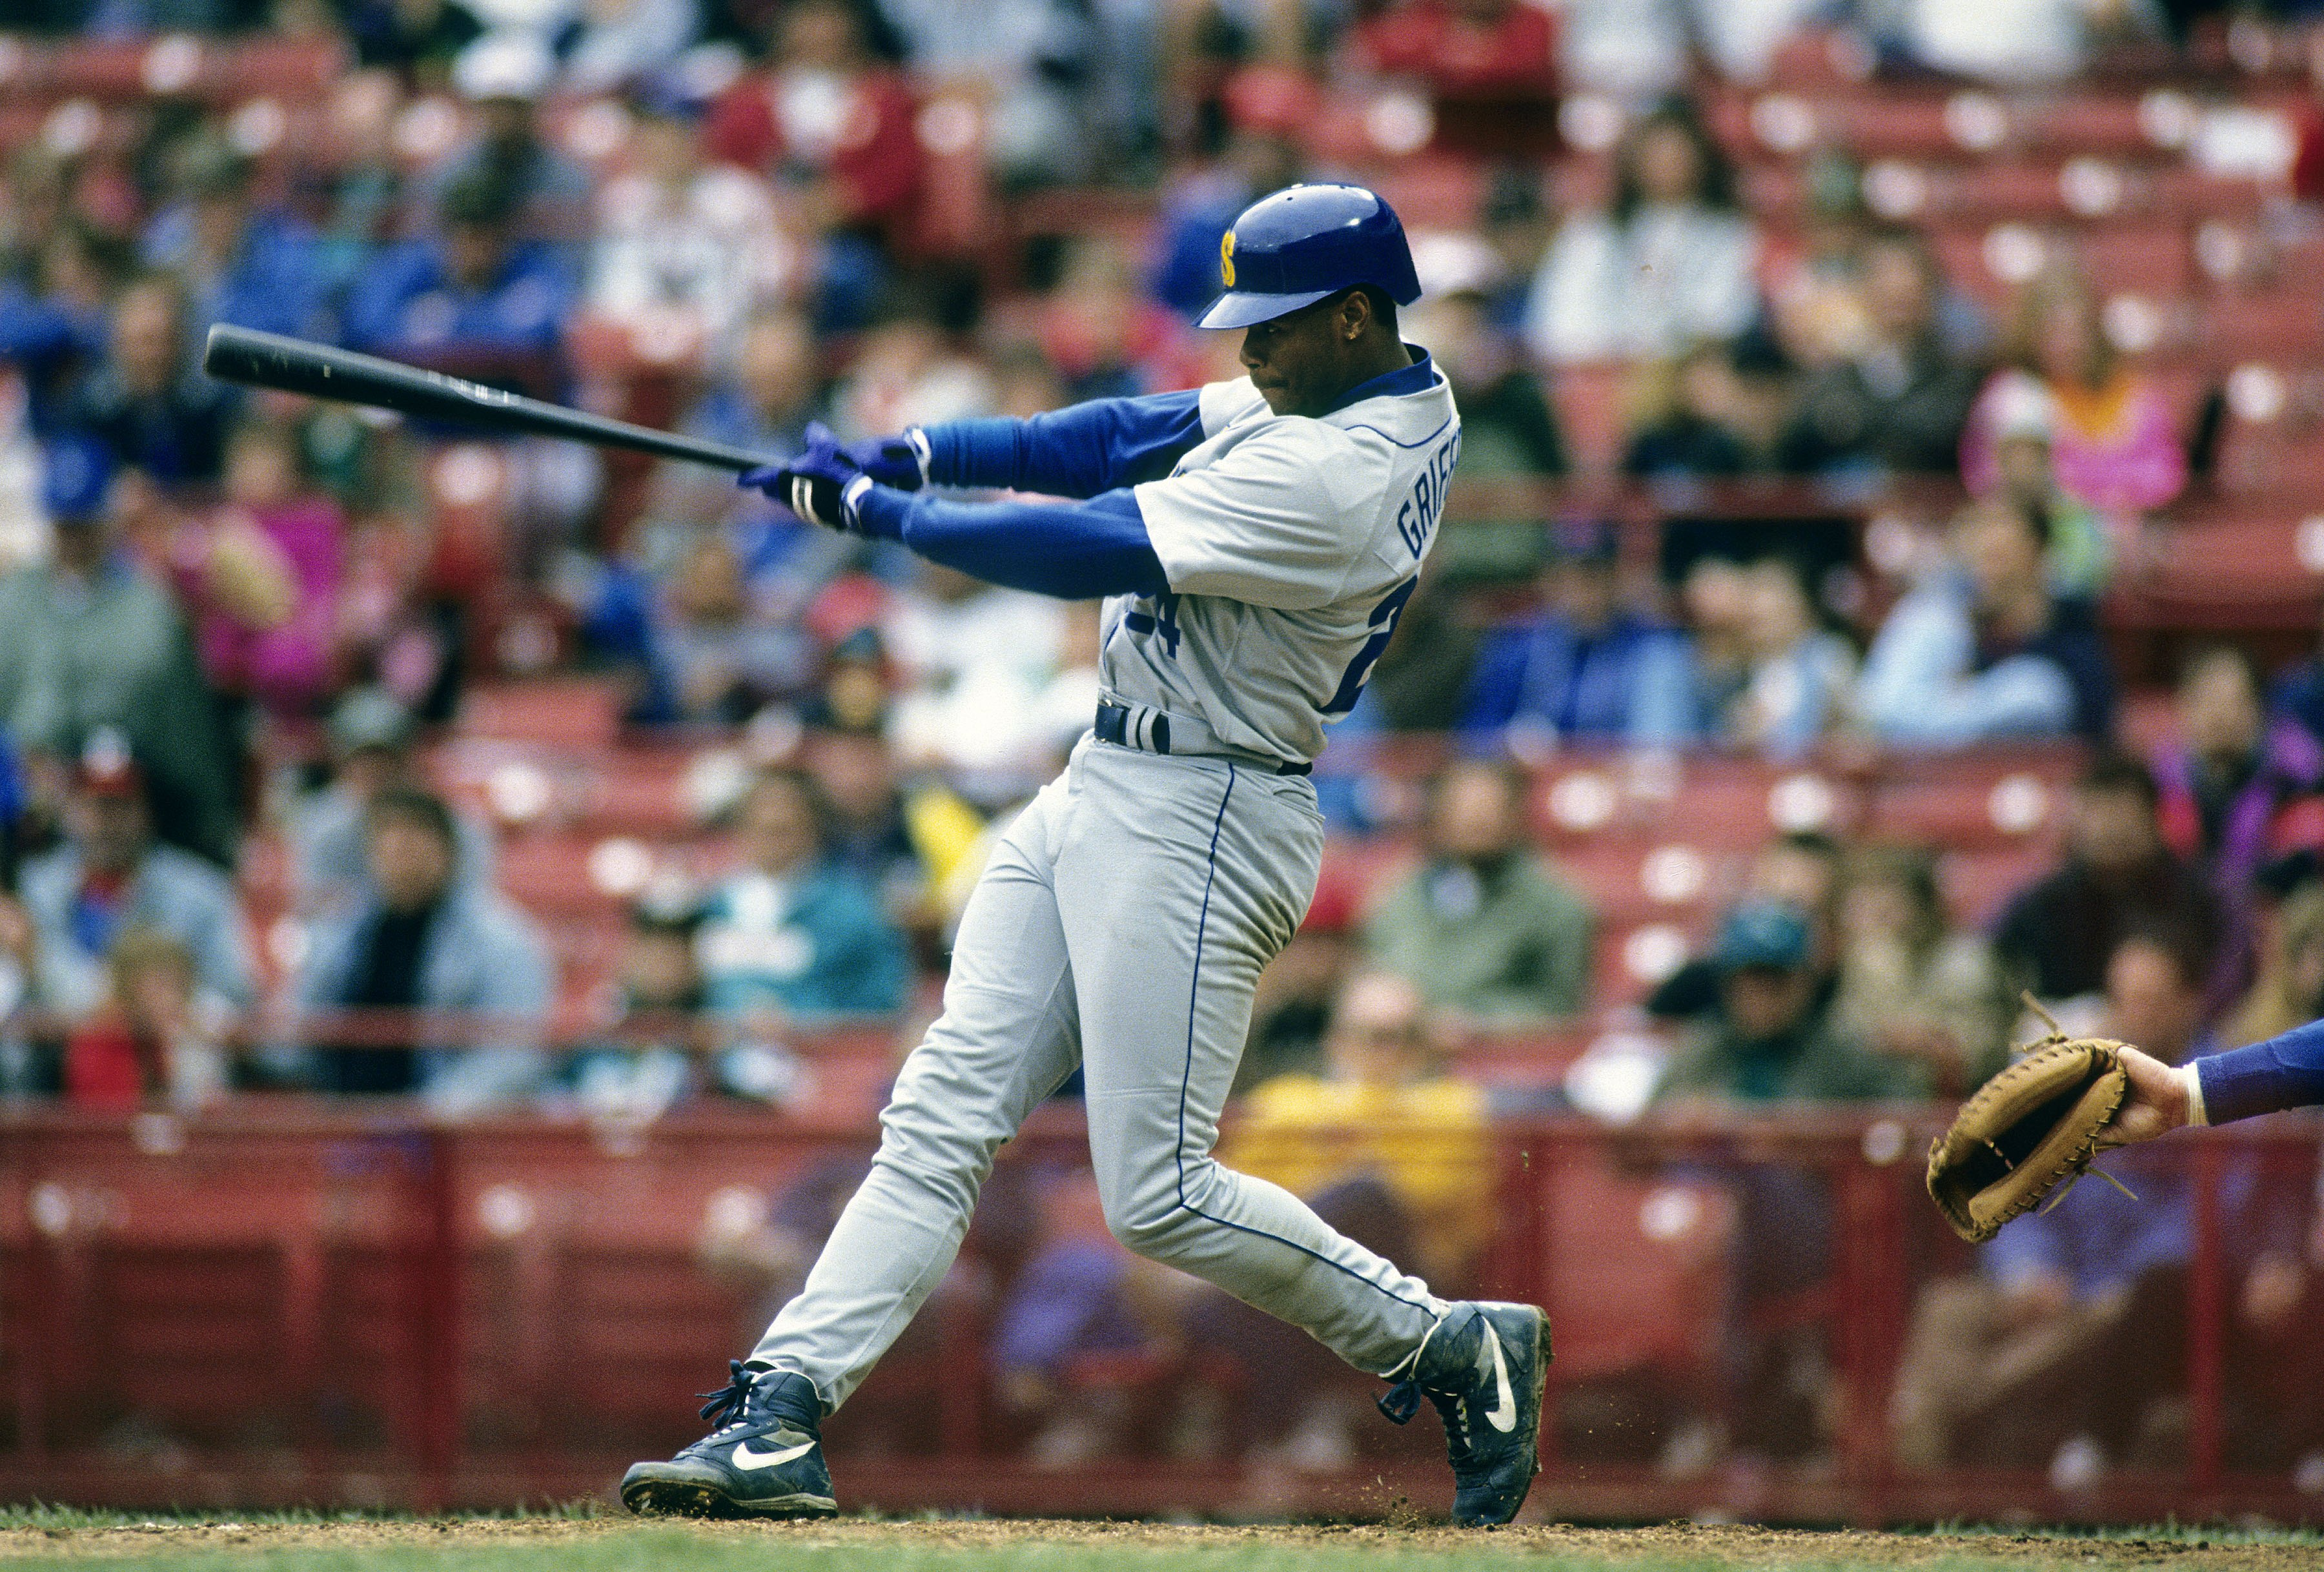 fb9eee6d49 Comments Leave a Comment; Posted in Ken Griffey Jr. is Living Proof That  Nice Guys Finish First; Full-size 3600 × 2435